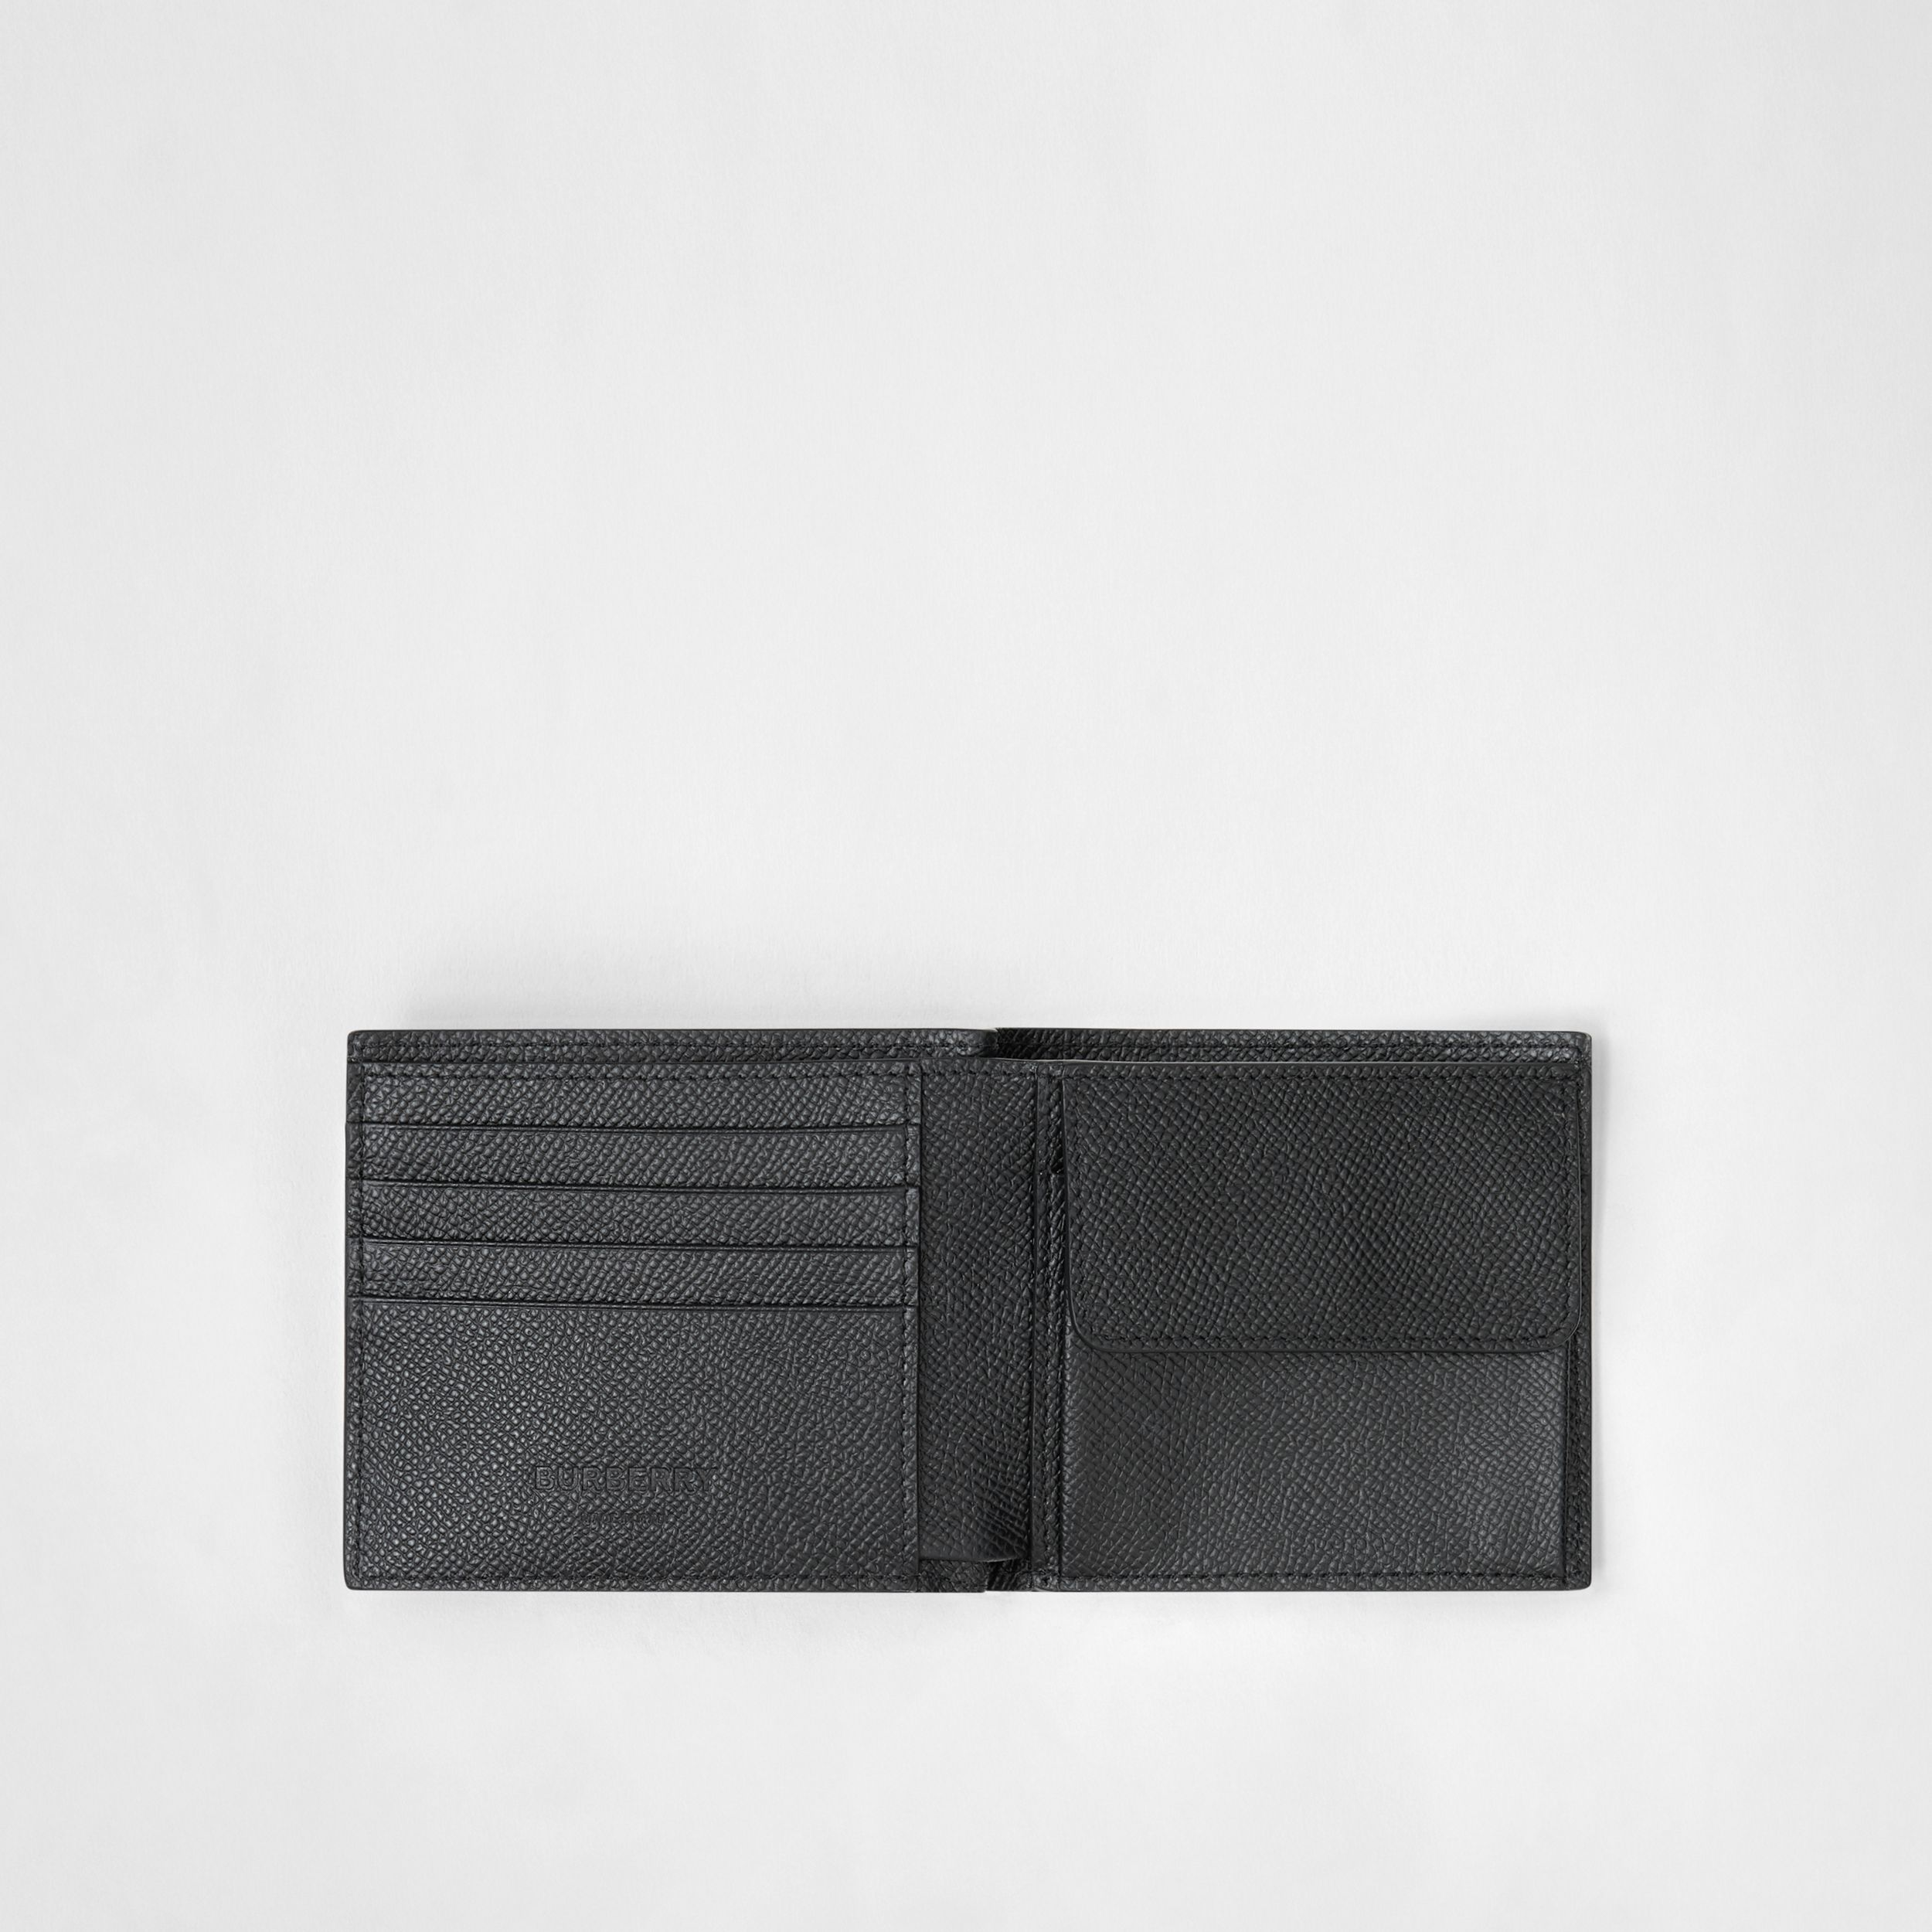 Grainy Leather International Bifold Coin Wallet in Black - Men | Burberry - 3